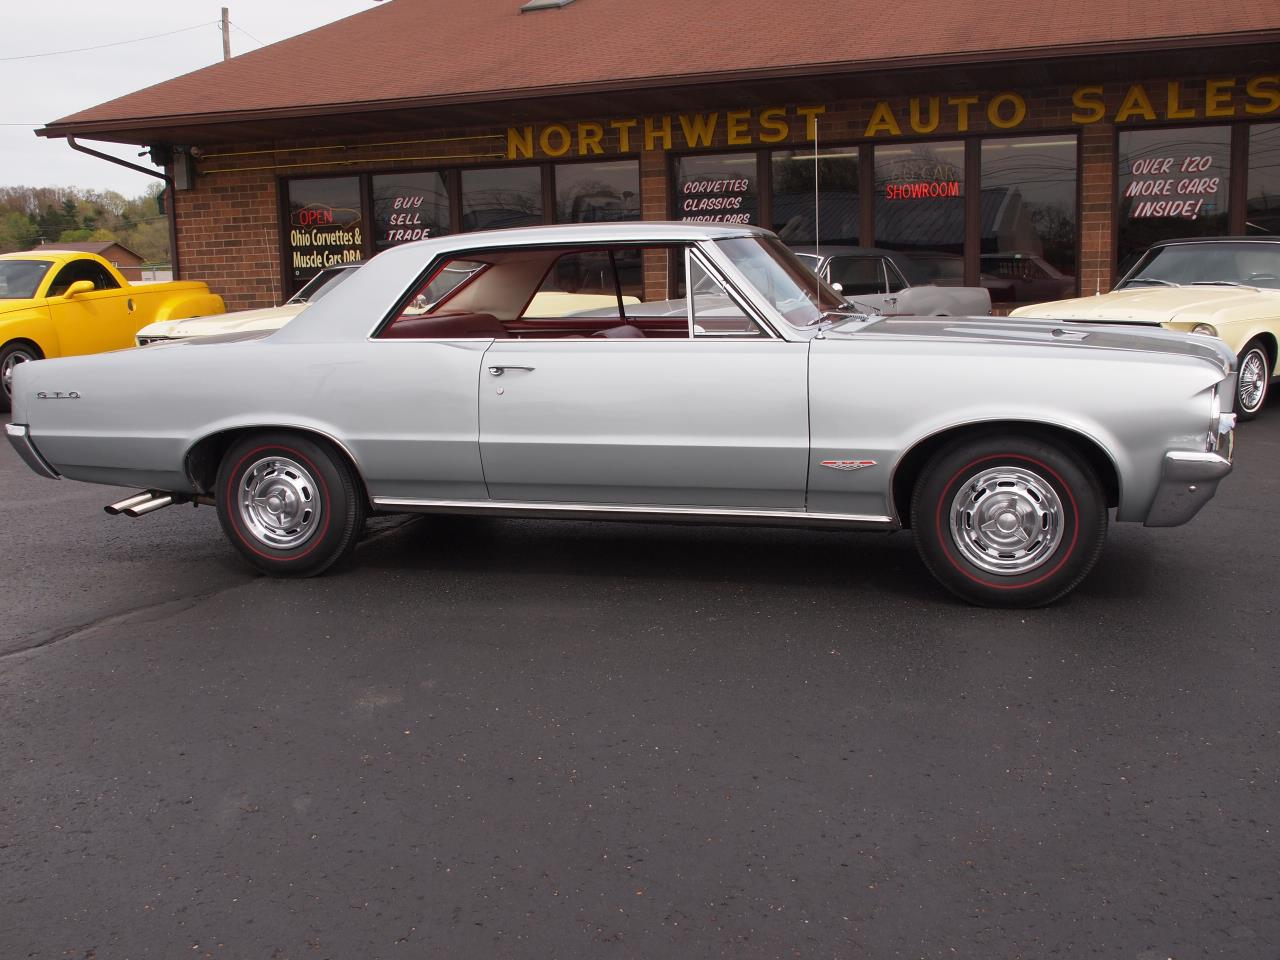 Large Picture of 1964 Pontiac LeMans located in North Canton Ohio Offered by Ohio Corvettes and Muscle Cars - Q6MP